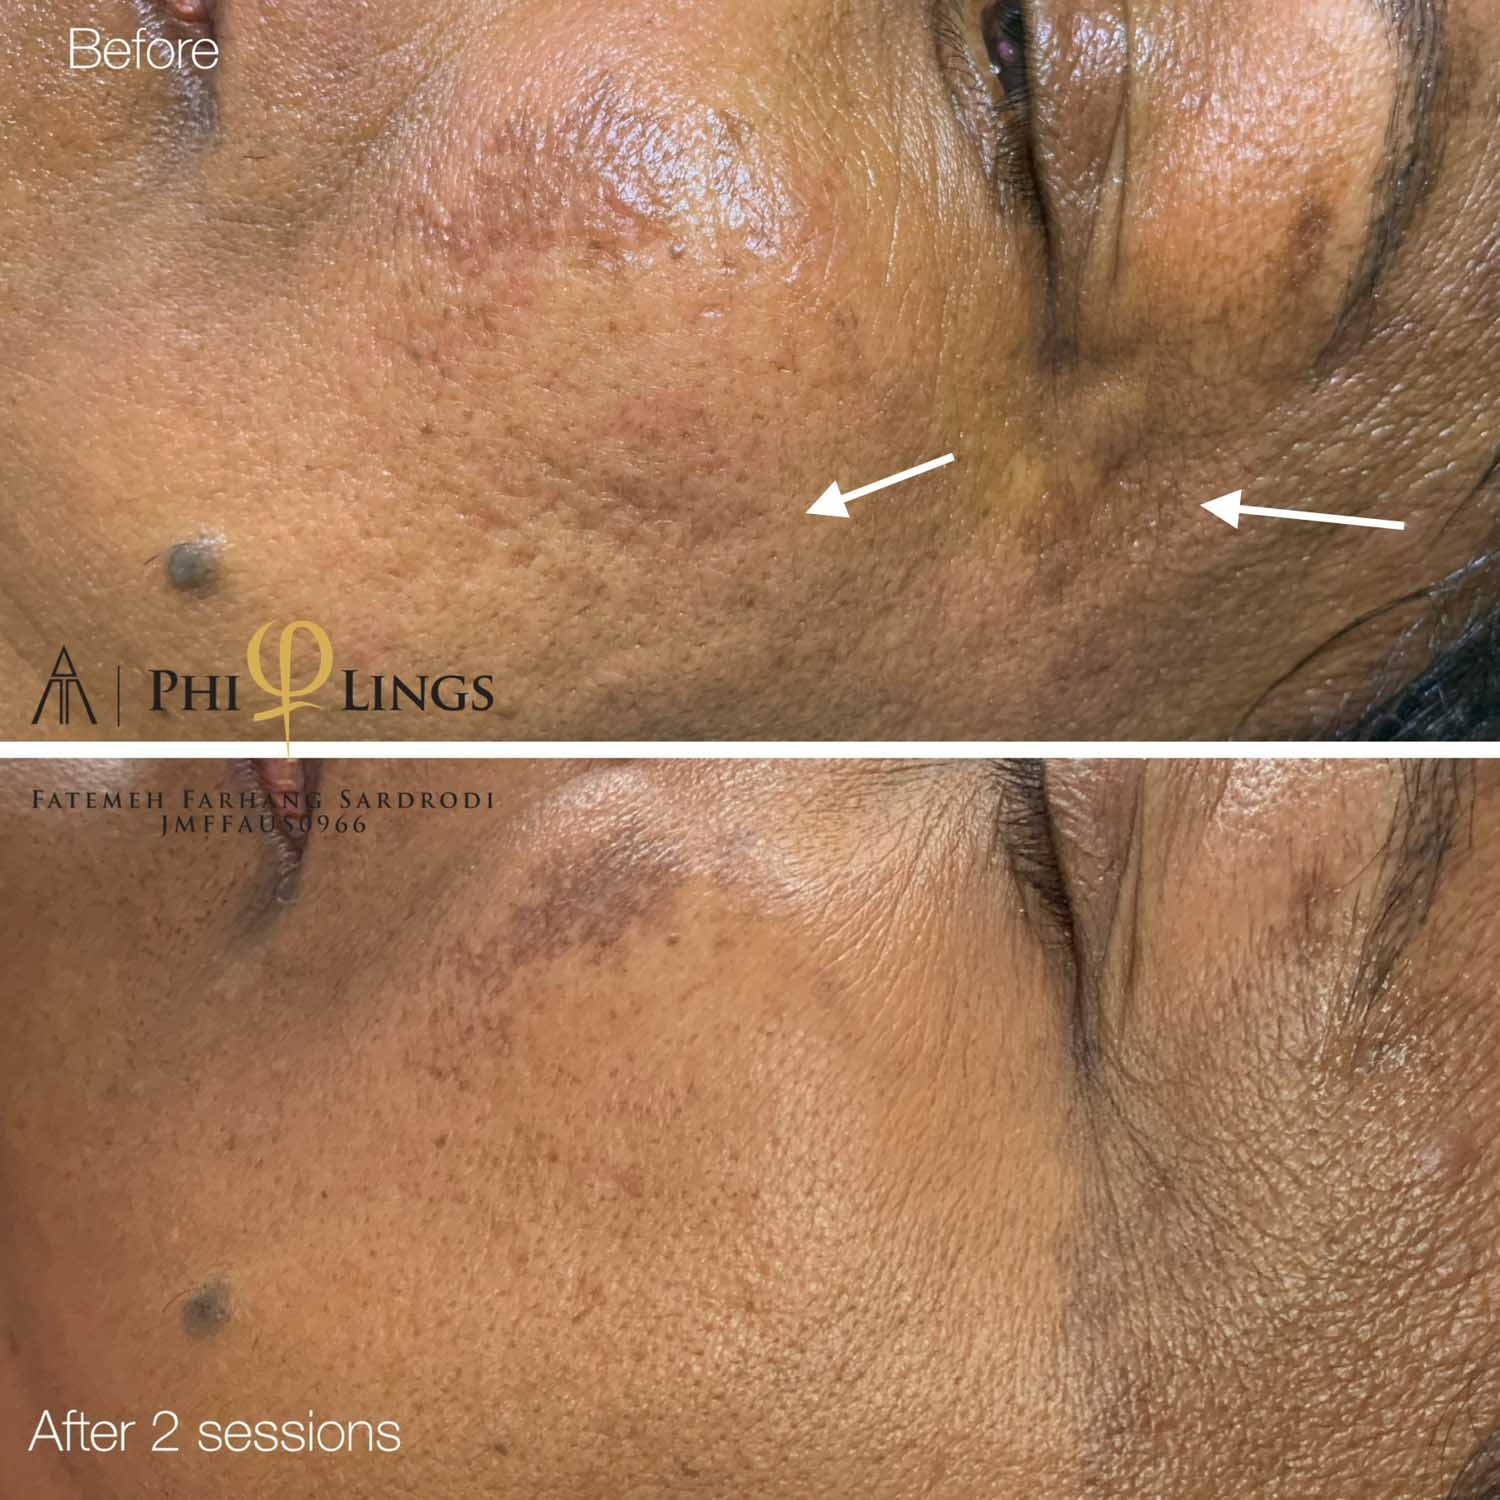 skin spots improvement